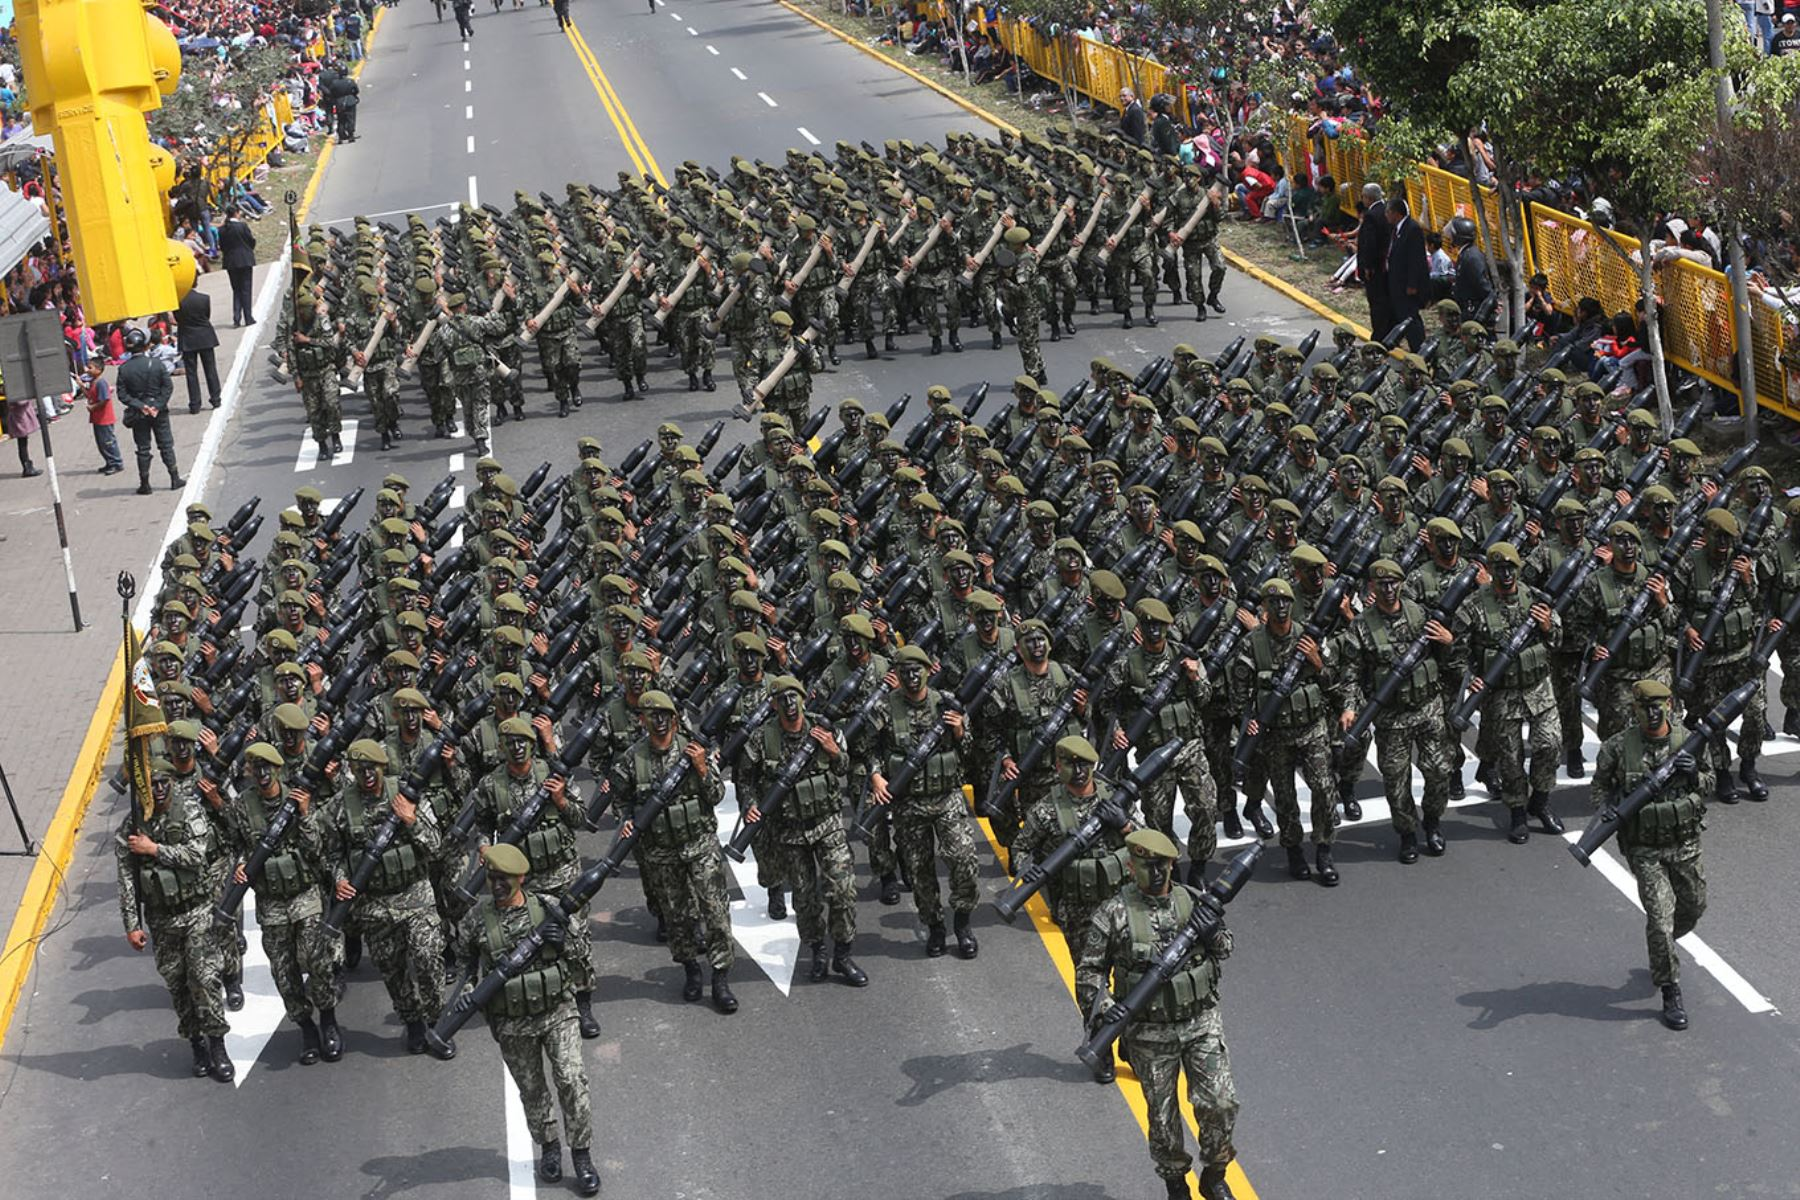 https://luizcore.files.wordpress.com/2015/07/desfile-y-gran-parada-militar-del-peru-2015-30.jpg